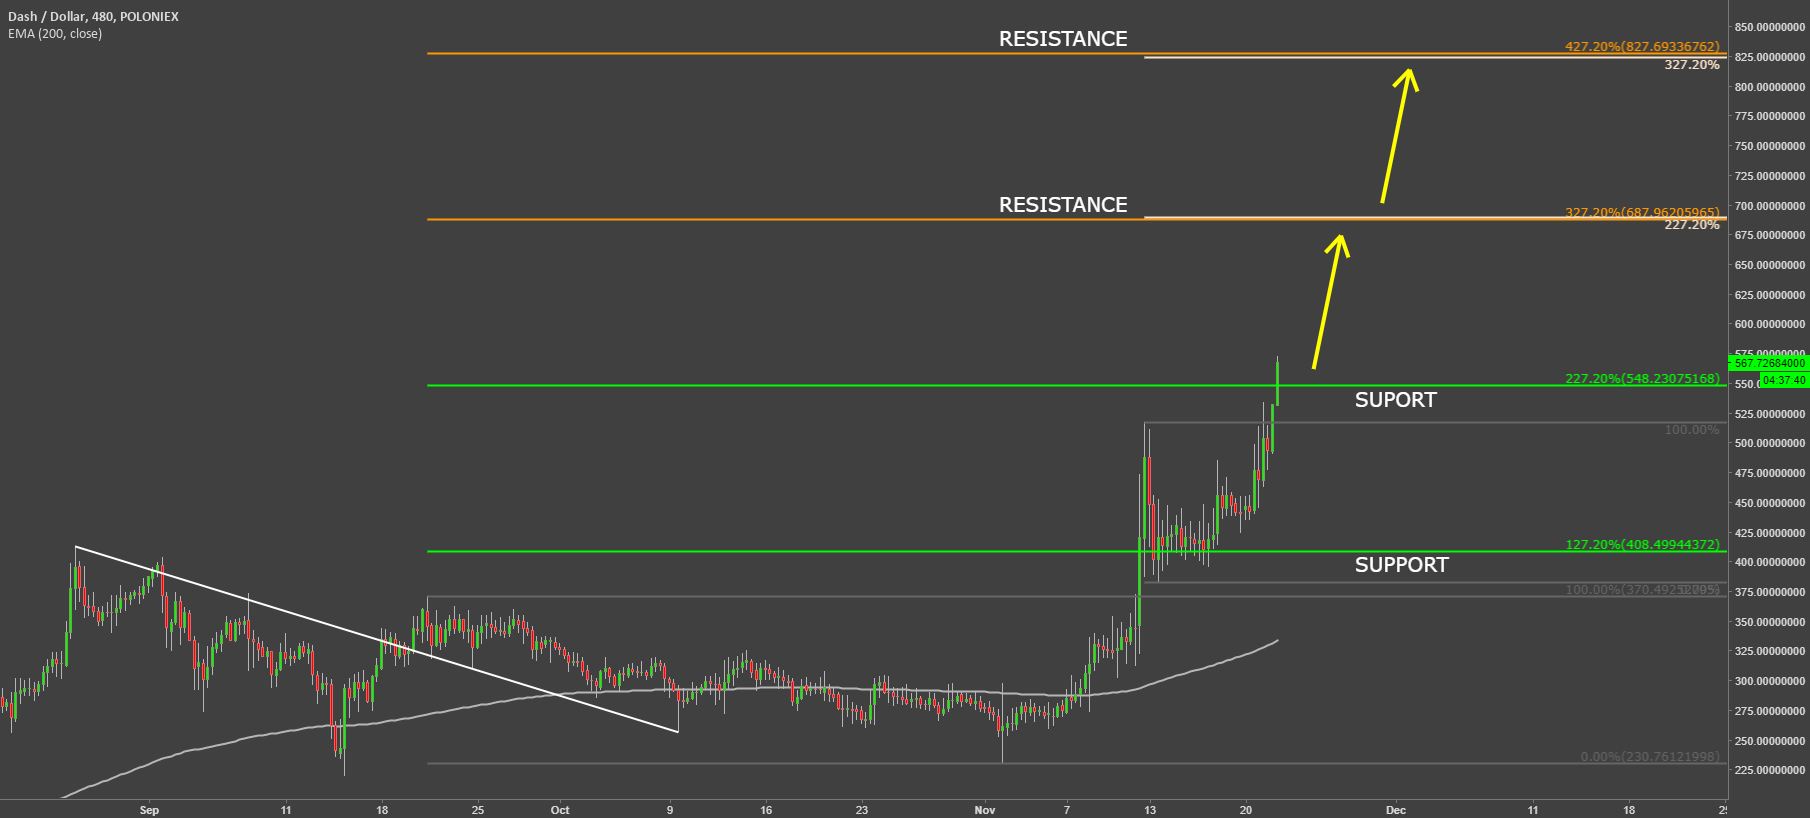 Dash Uptrend Should Continue And Even Accelerate